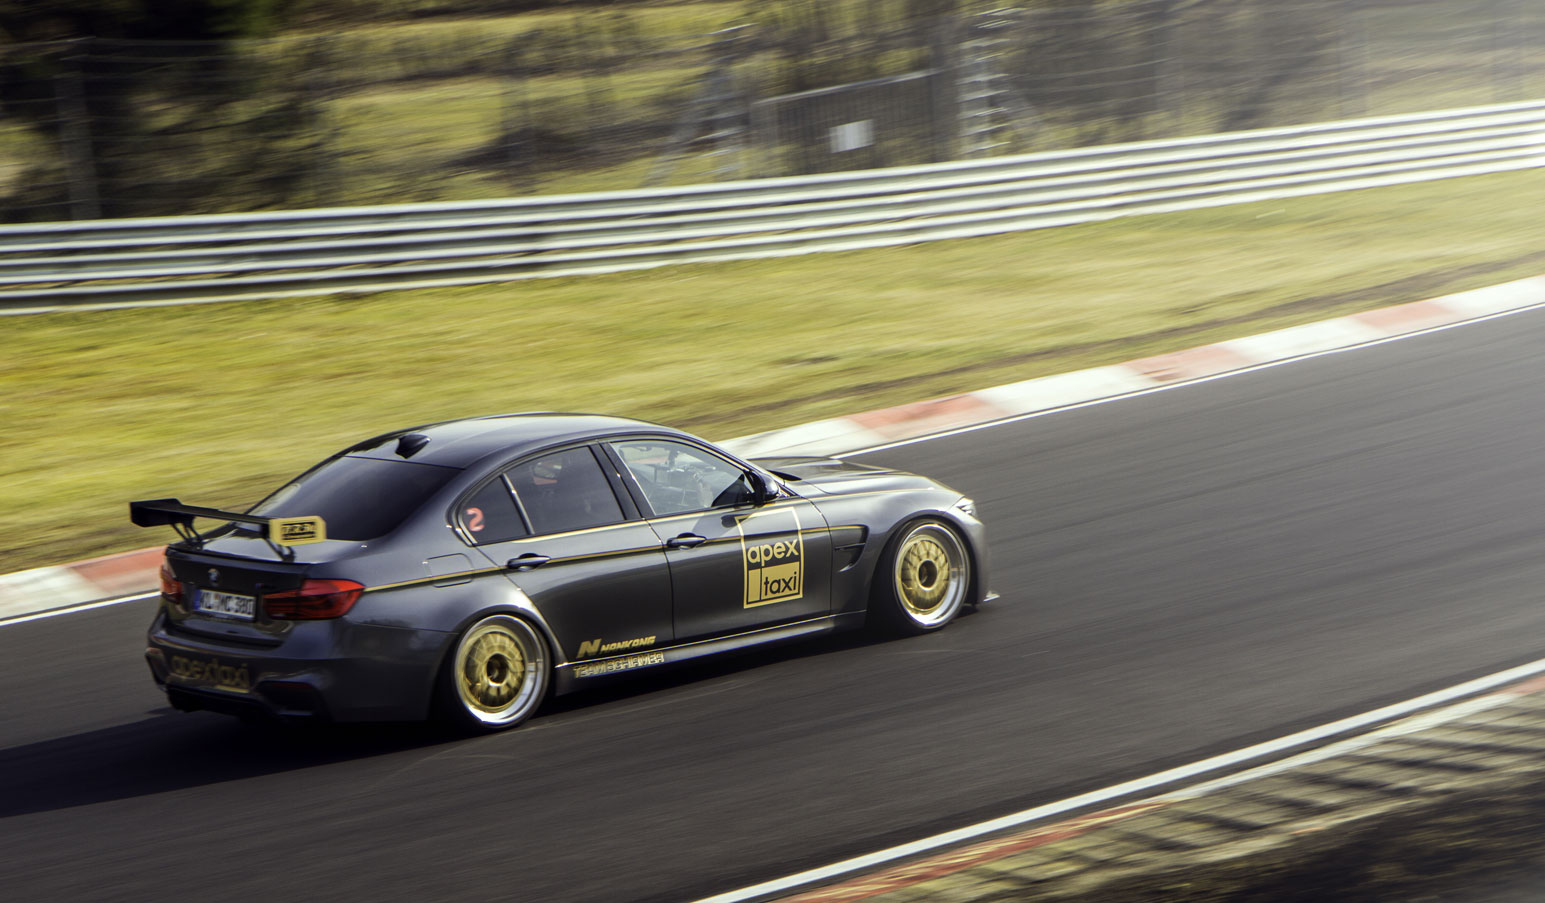 Racing at the Nürburg Ring with rental cars from Apex